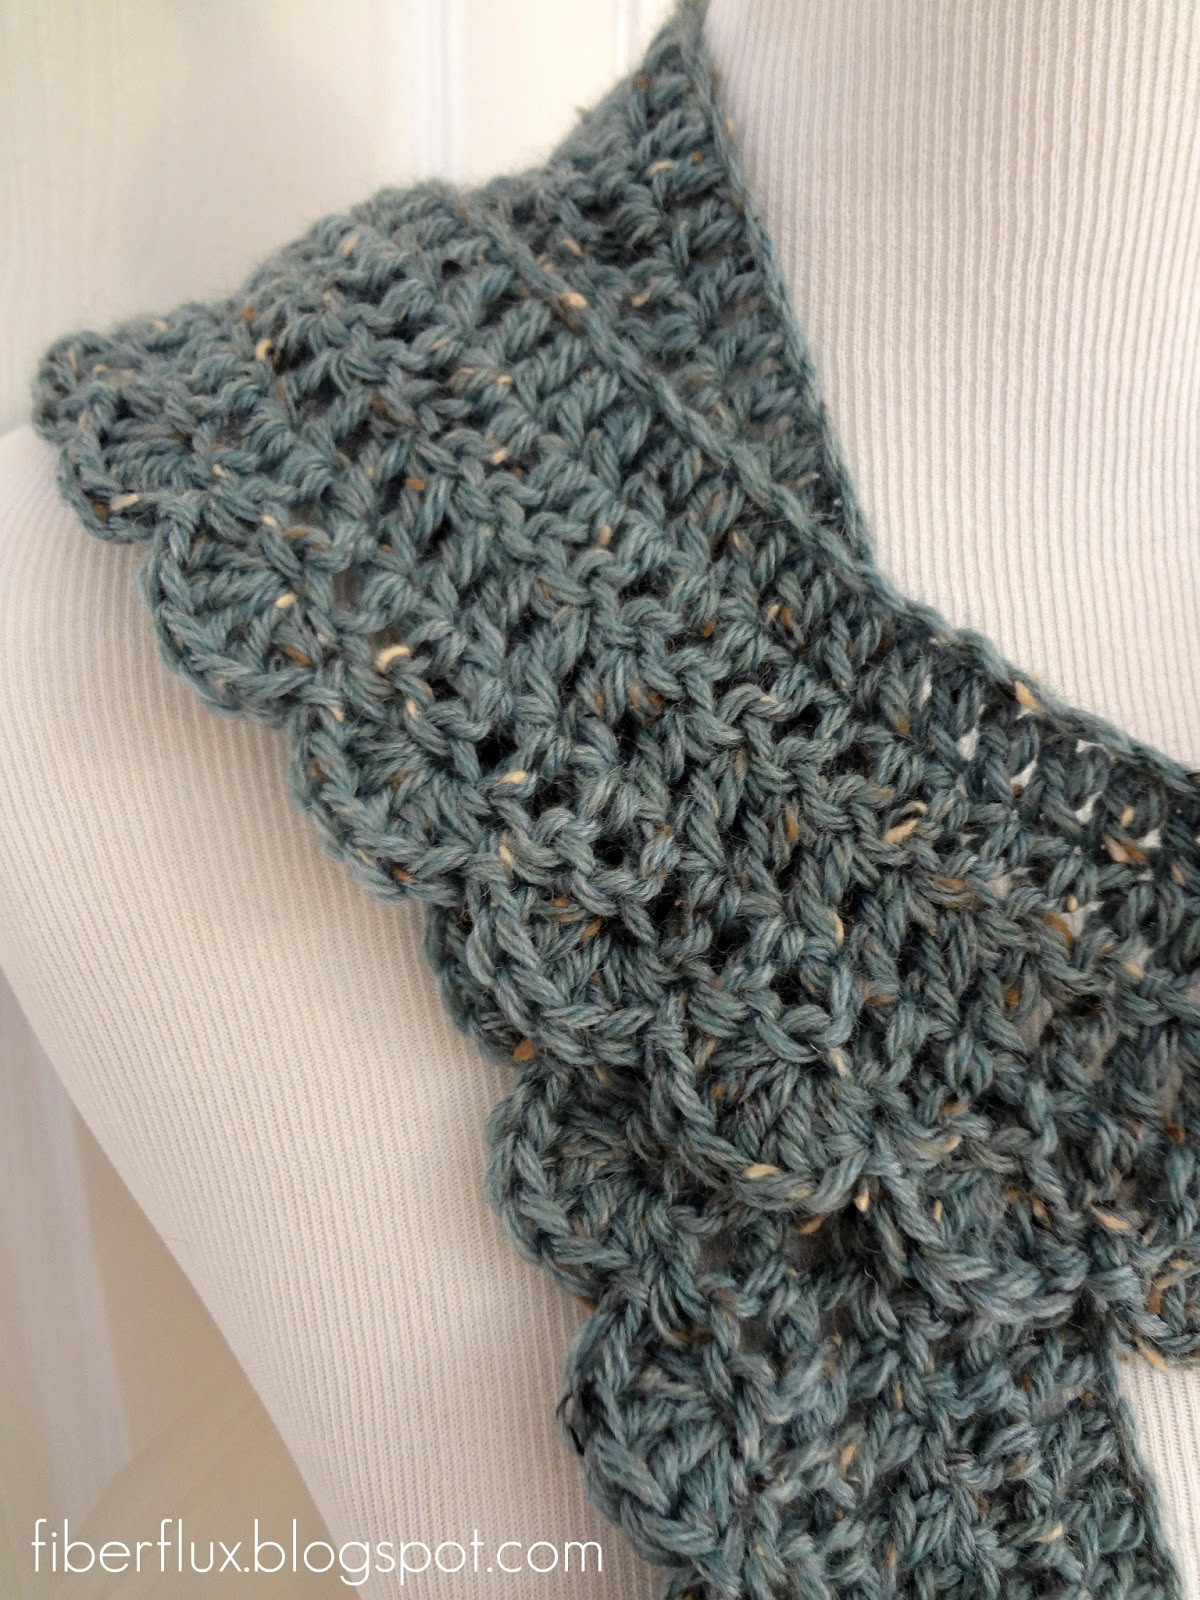 Free Crochet Scarf Patterns Awesome Fiber Flux Free Crochet Pattern Ocean Air Scarf Of Charming 48 Images Free Crochet Scarf Patterns